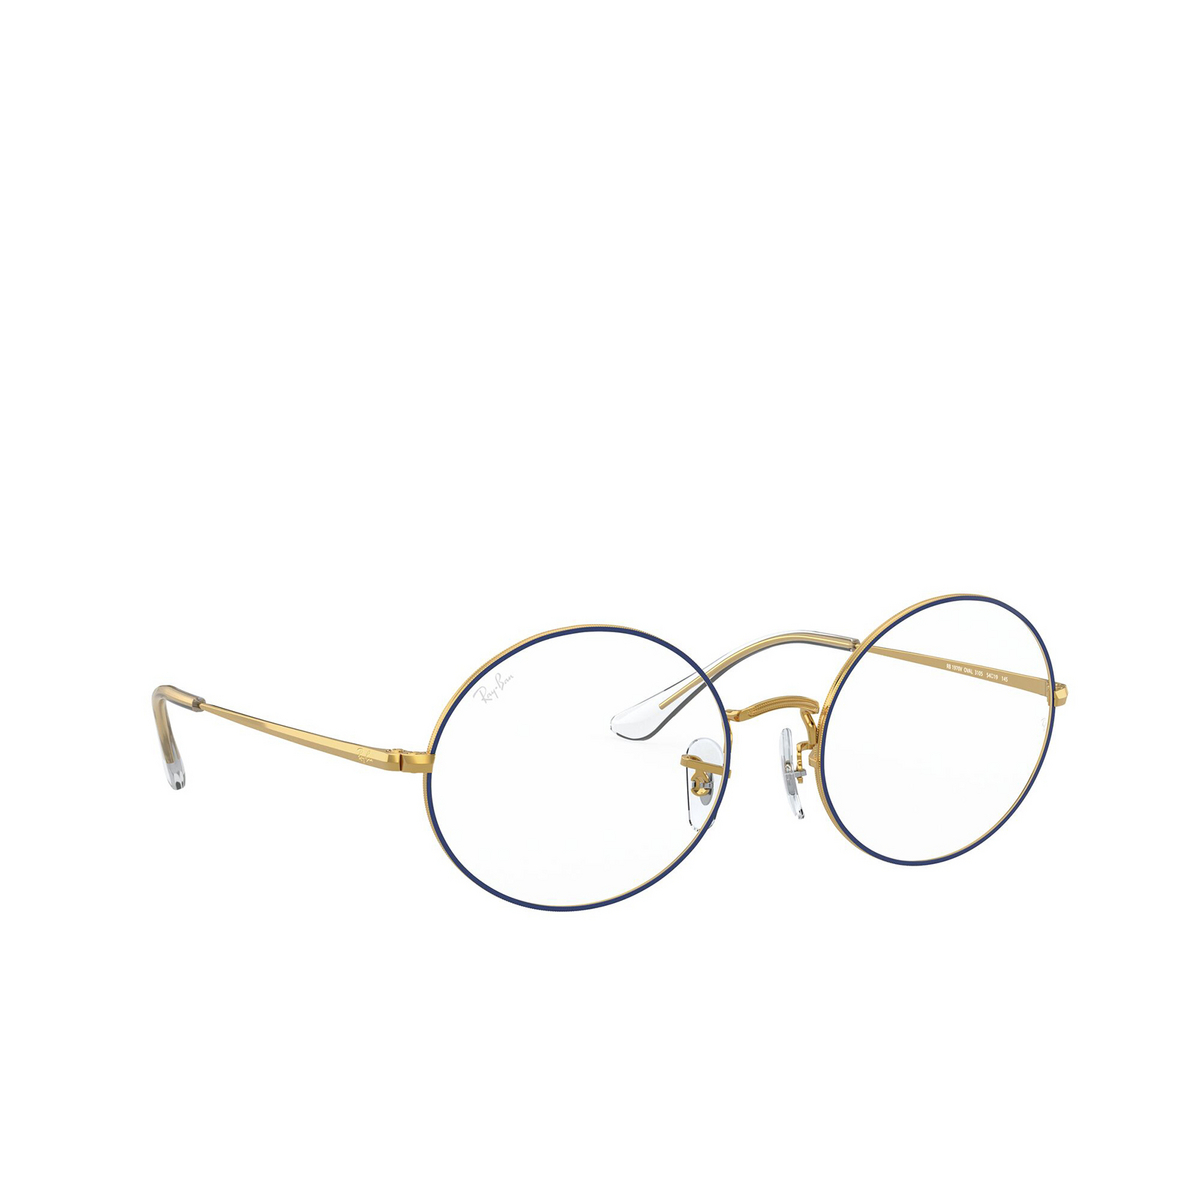 Ray-Ban® Oval Eyeglasses: Oval RX1970V color Blue On Legend Gold 3105 - three-quarters view.